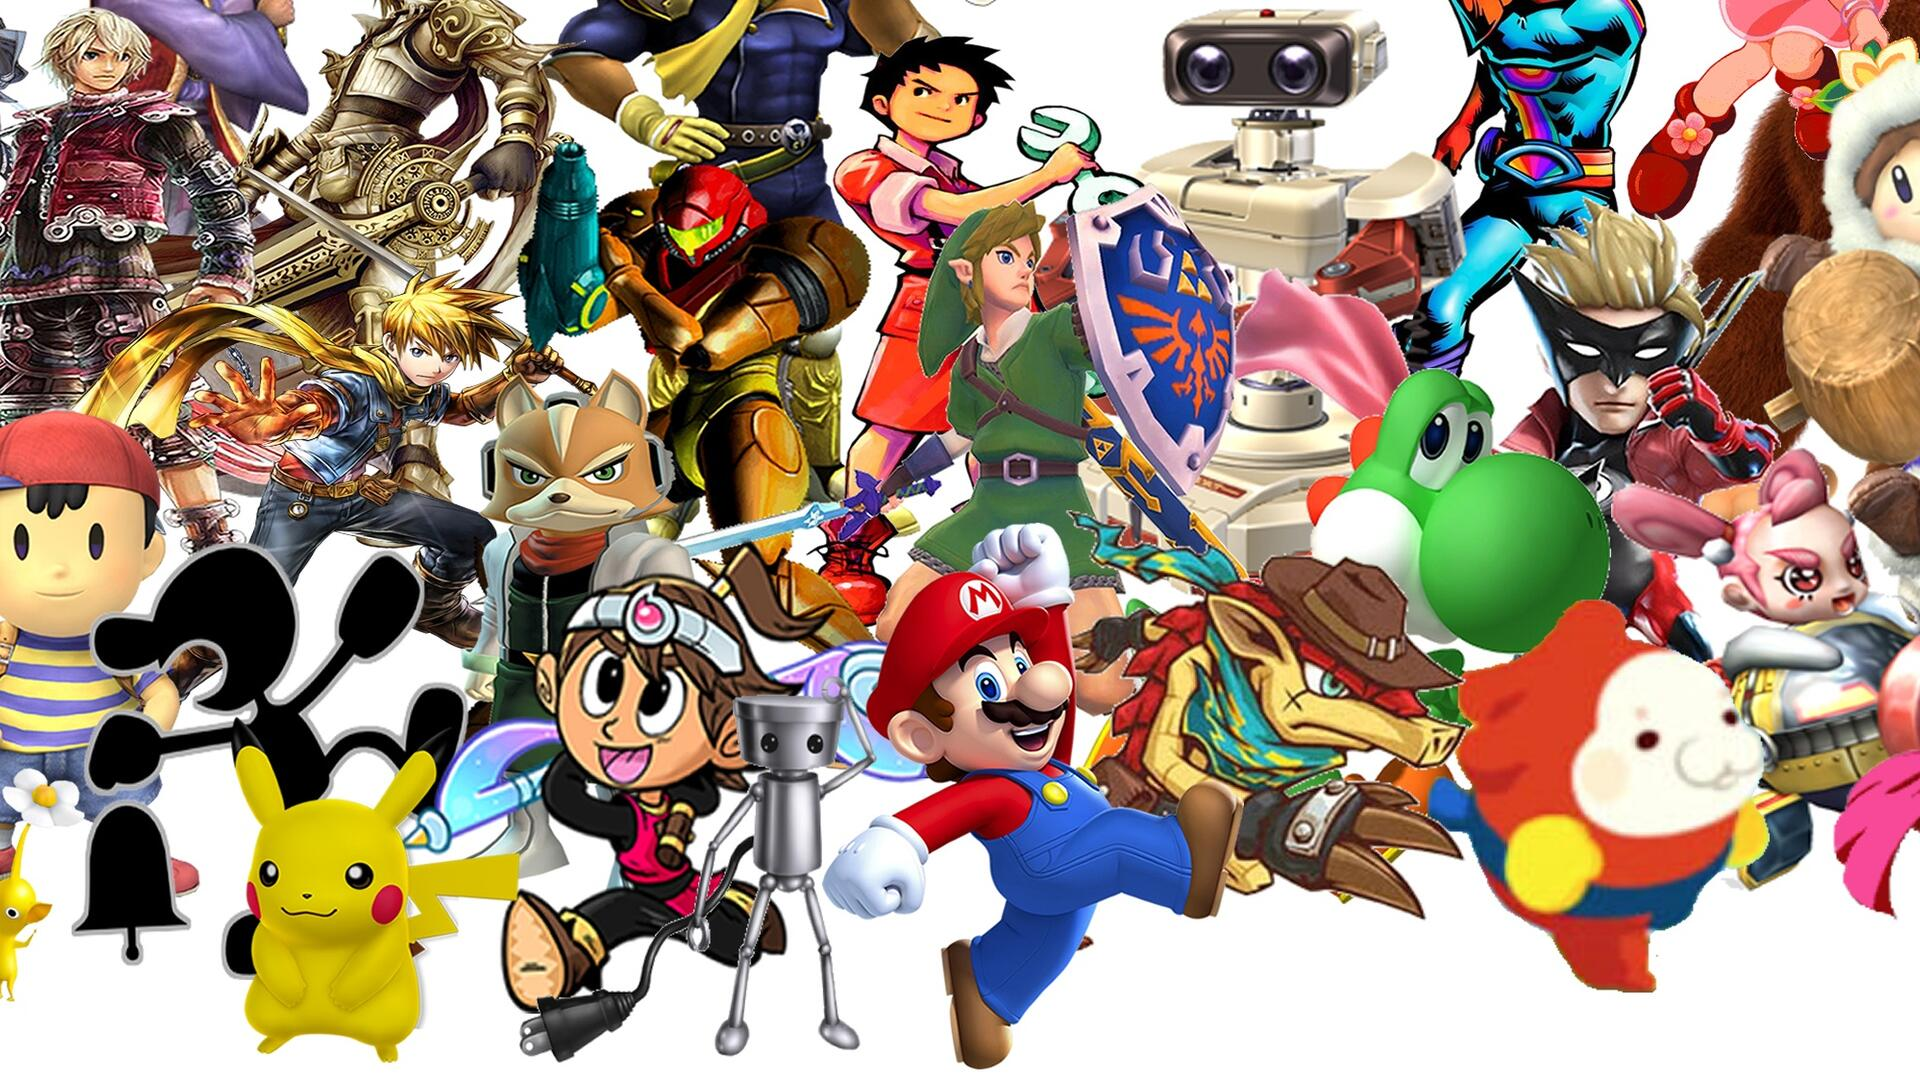 DS Games on Wii U, Nintendo's Smartphone Strategy and More